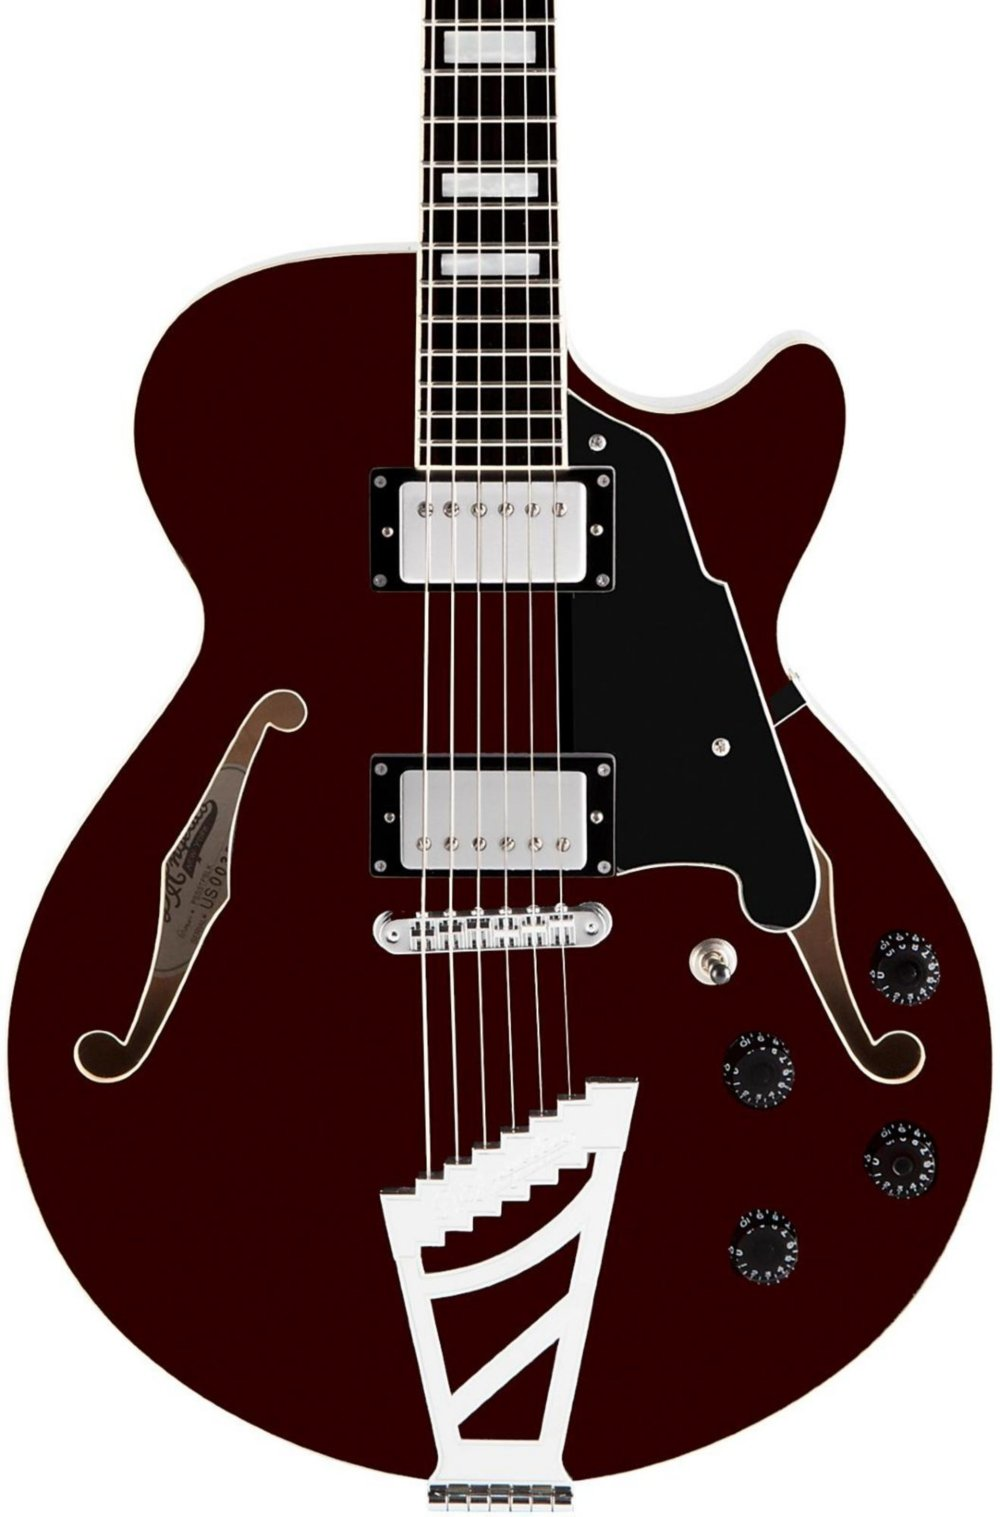 Cheap D Angelico Premier SS Semi-Hollow Electric Guitar w/ Stairstep Tailpiece - Trans Wine Black Friday & Cyber Monday 2019